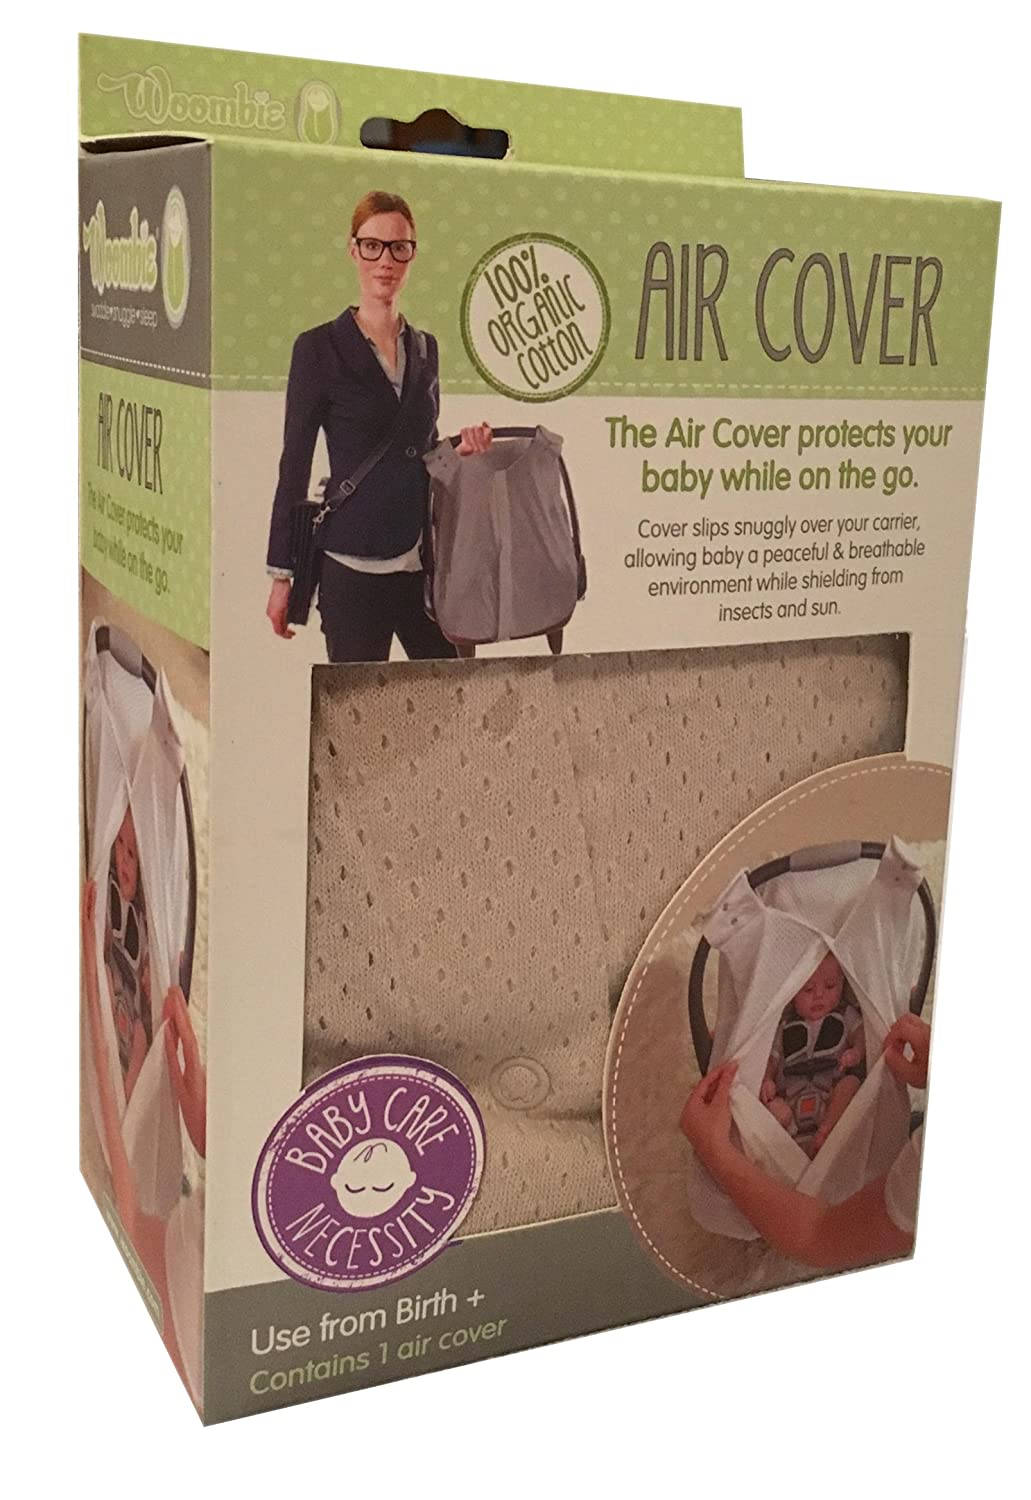 Woombie Organic Air Cover, Pink